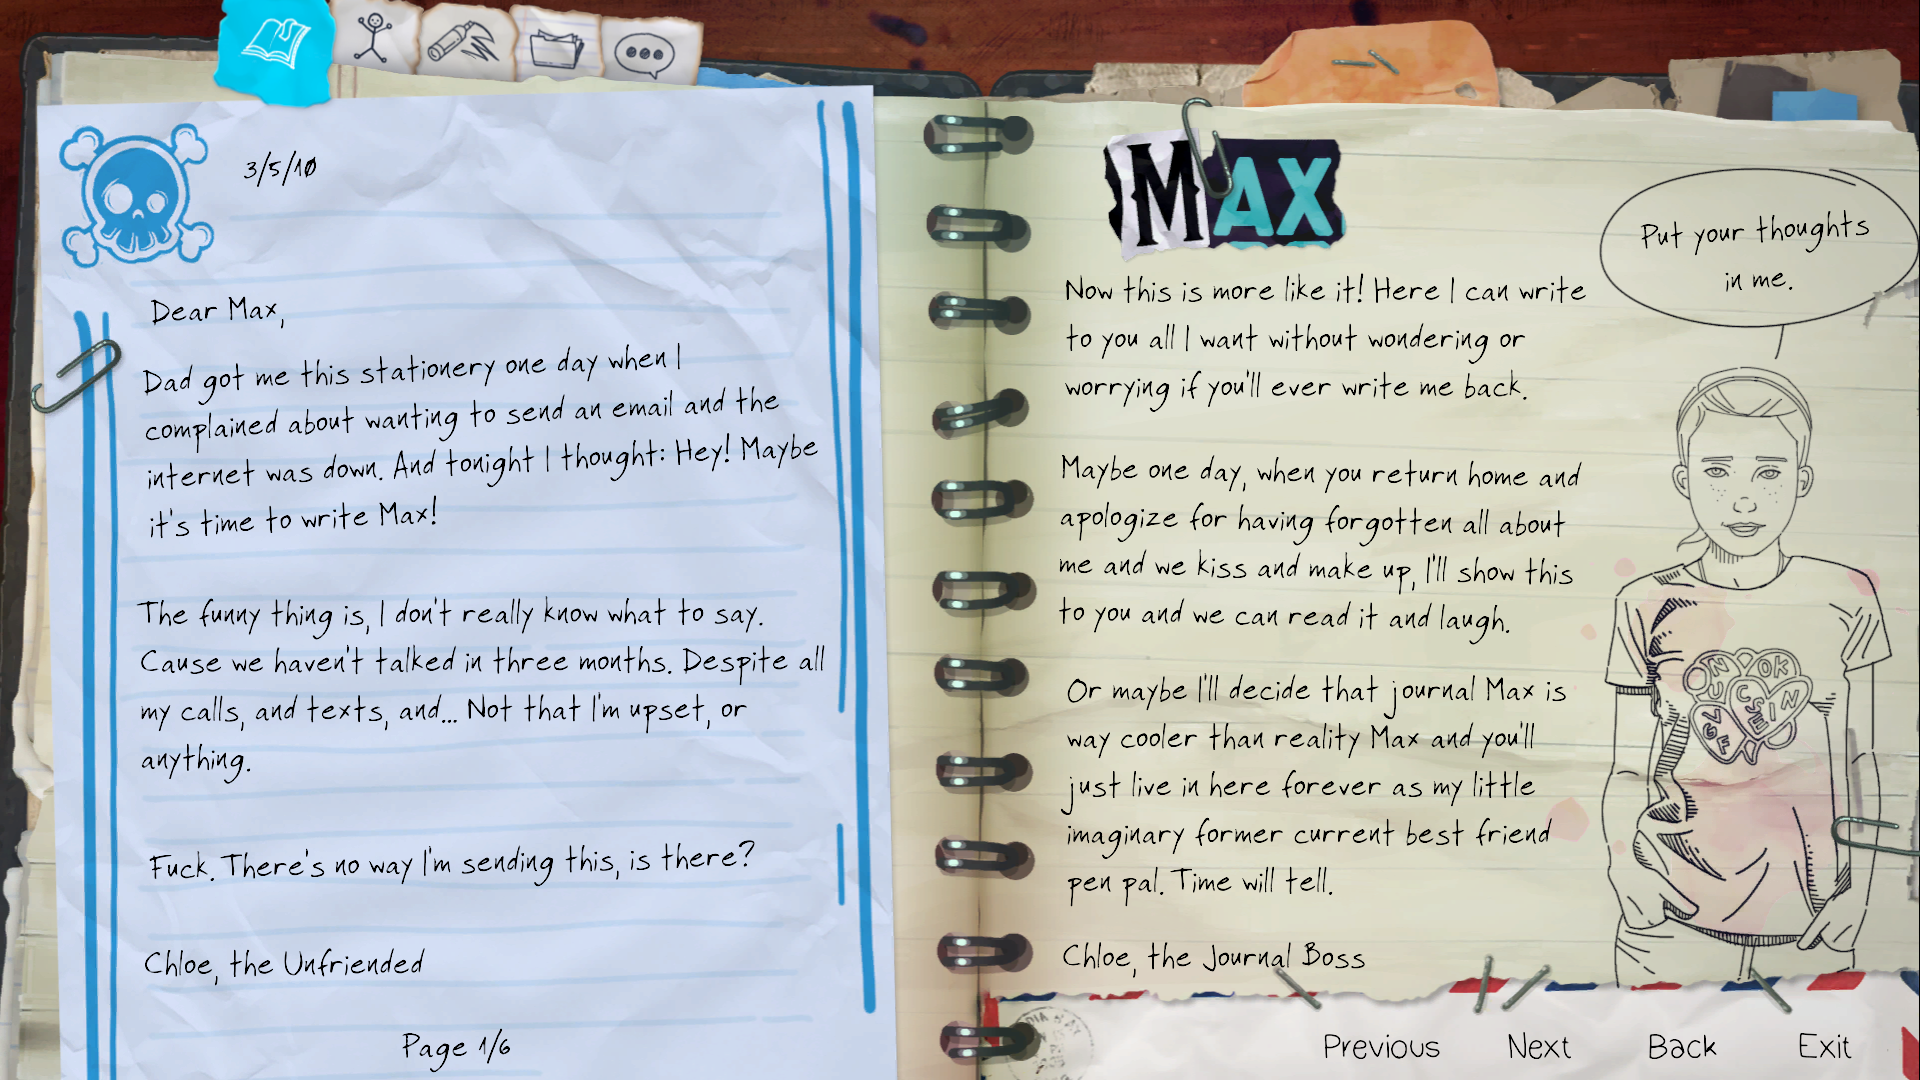 Chloe's Letters | Life is Strange Wiki | FANDOM powered by Wikia